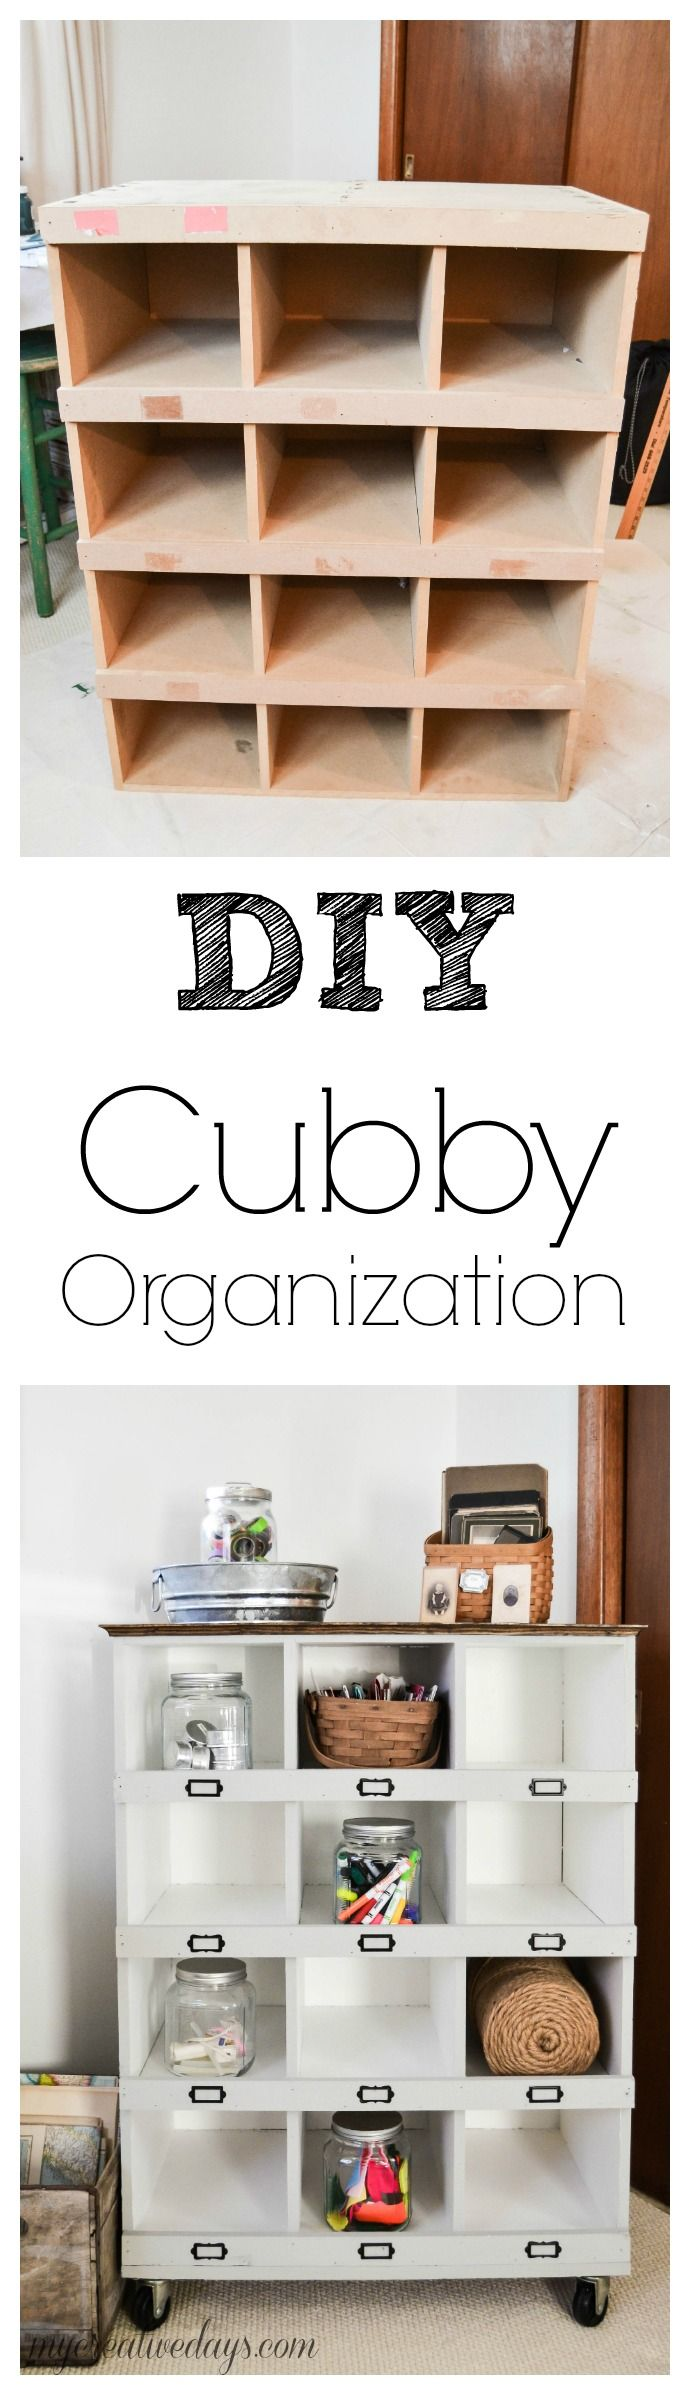 DIY Cubby Organization | Upcycled furniture | Home organizing idea